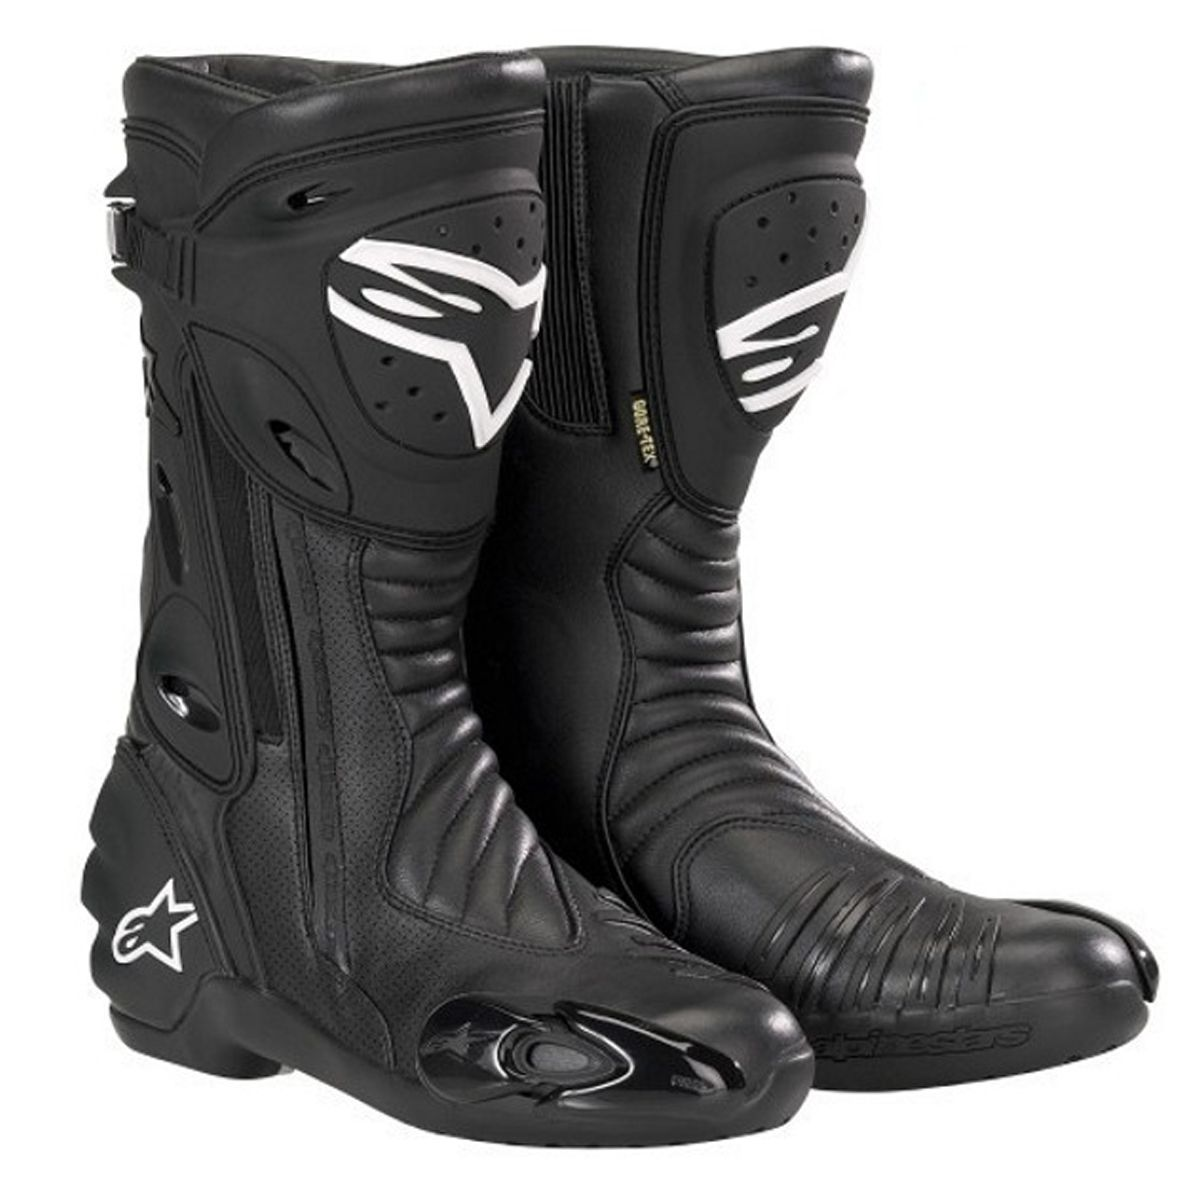 Alpinestars S-MX R Boot Review